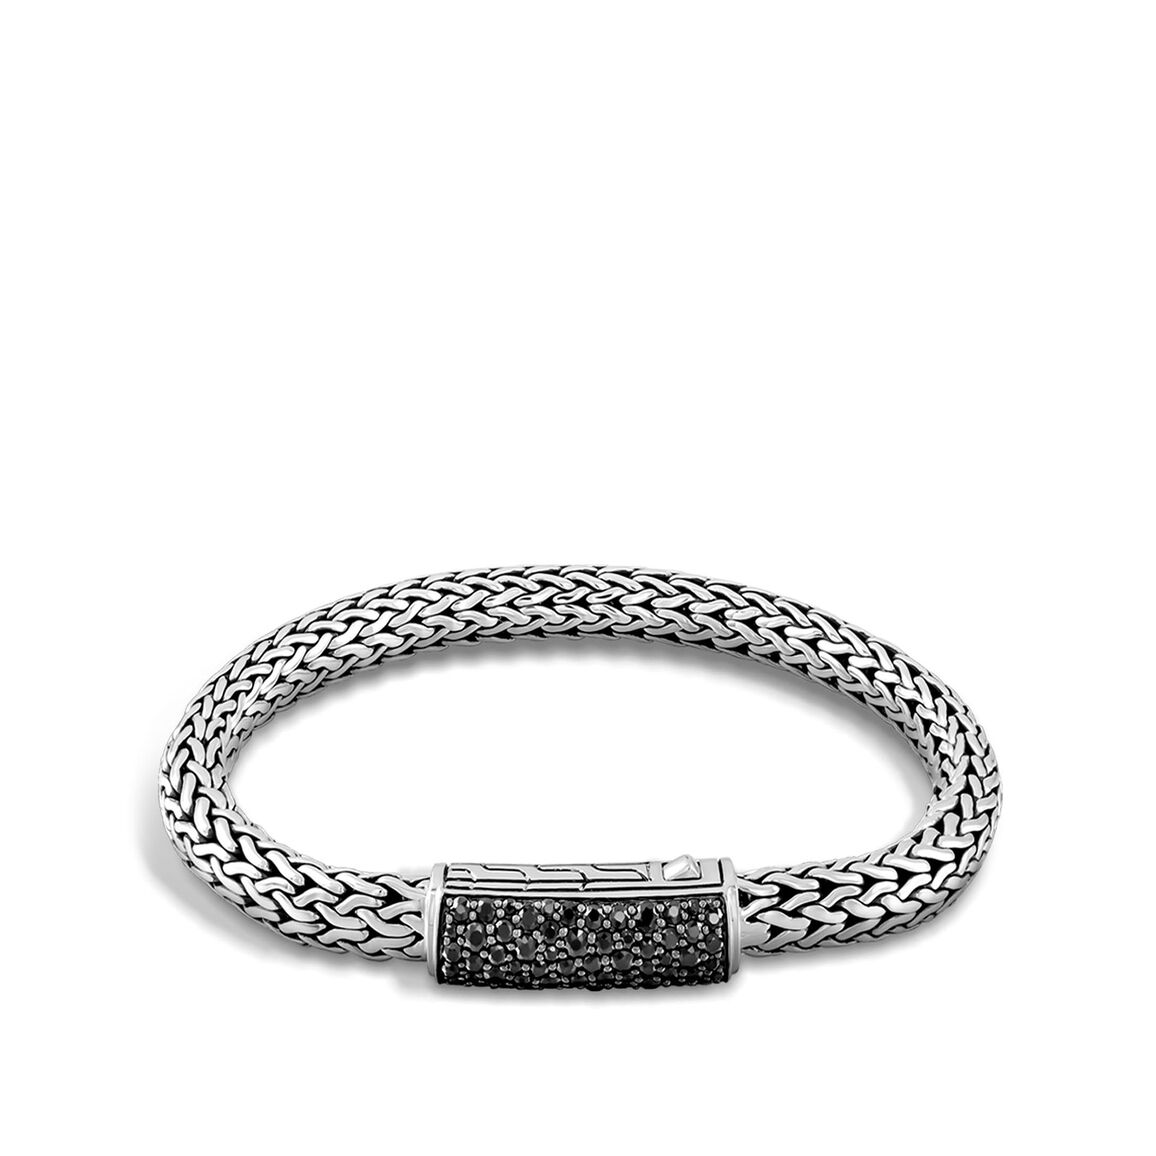 Classic Chain 7.5MM ID Bracelet in Silver with Gemstone